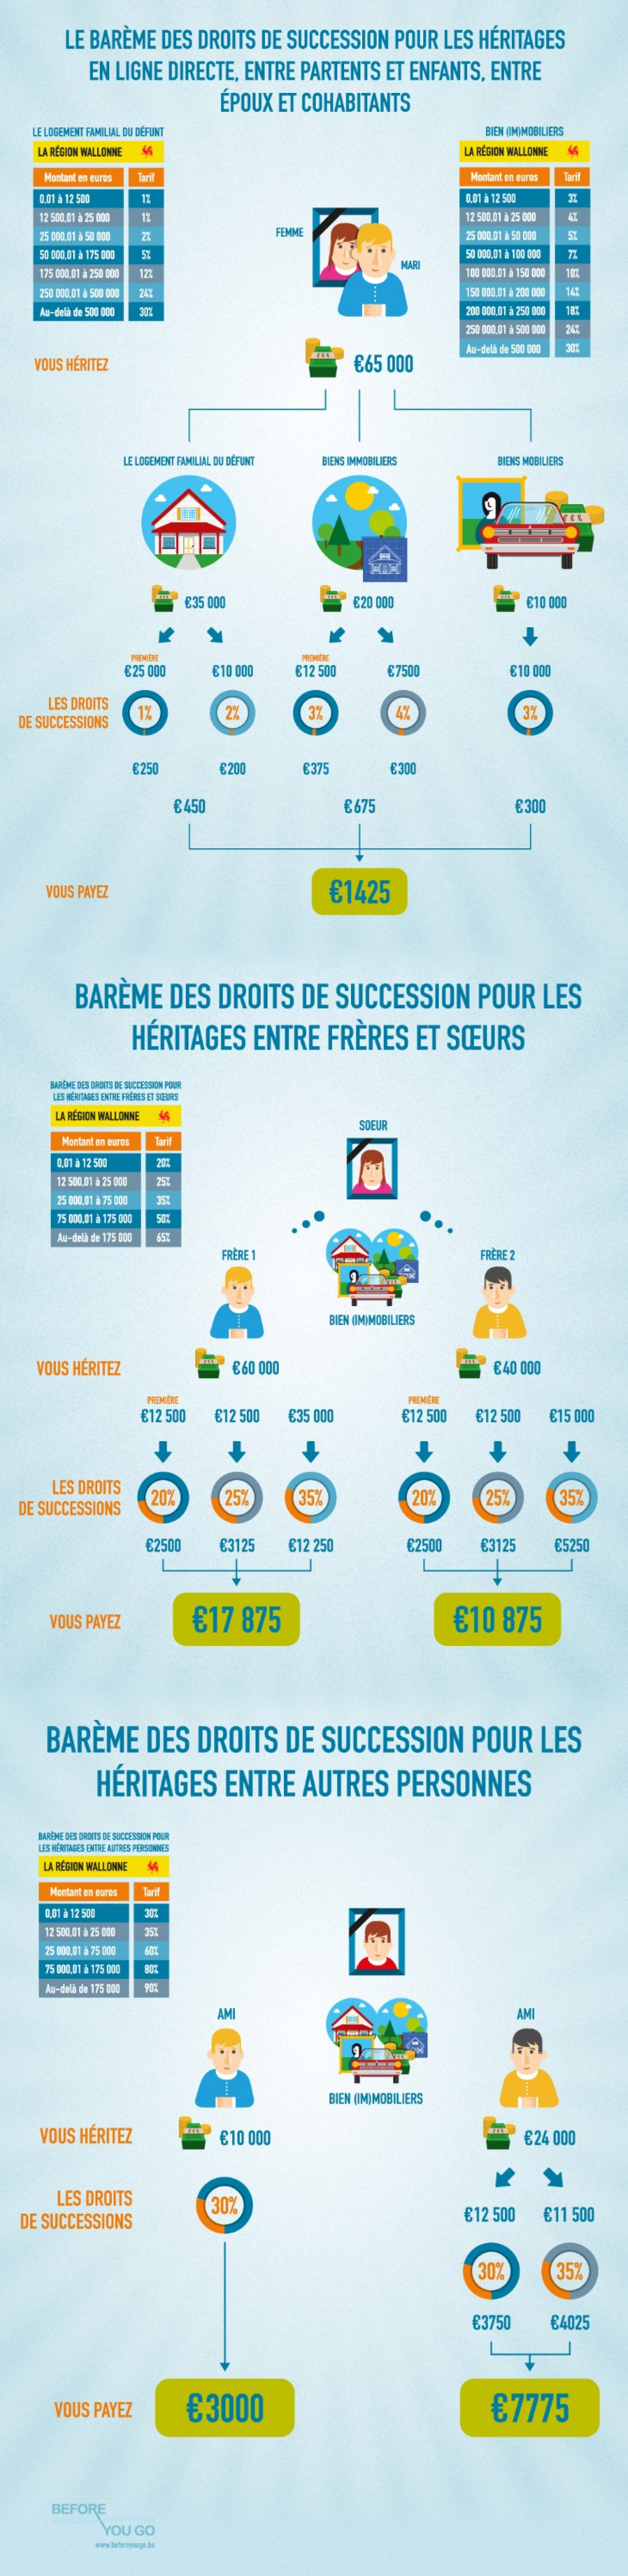 Les droits de succession Infographic